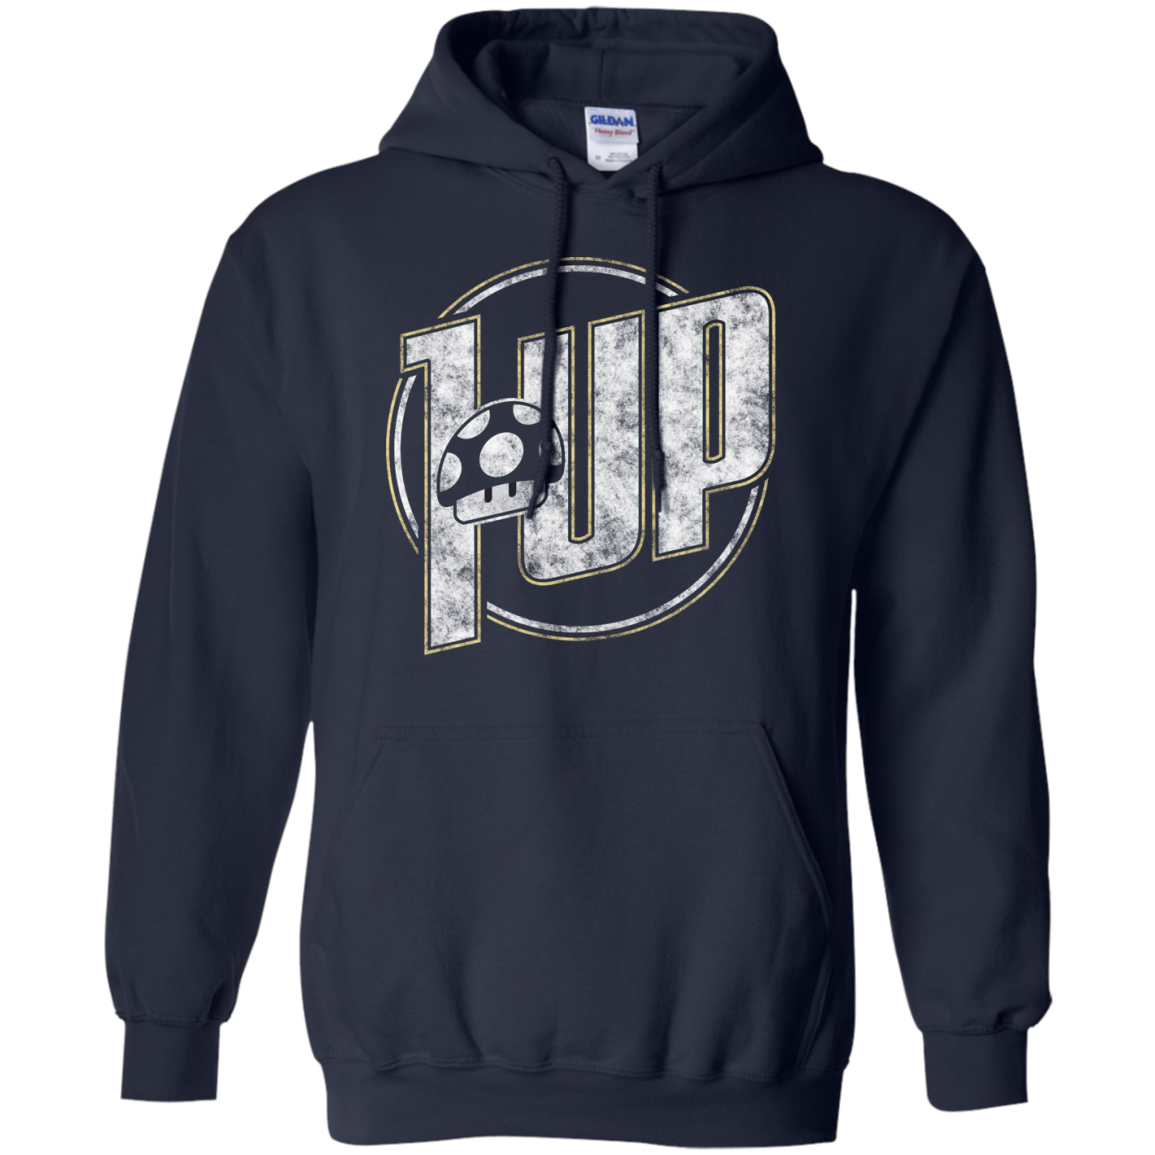 1-UP T-Shirt Hoodie Sweatshirt - The Sun Cat